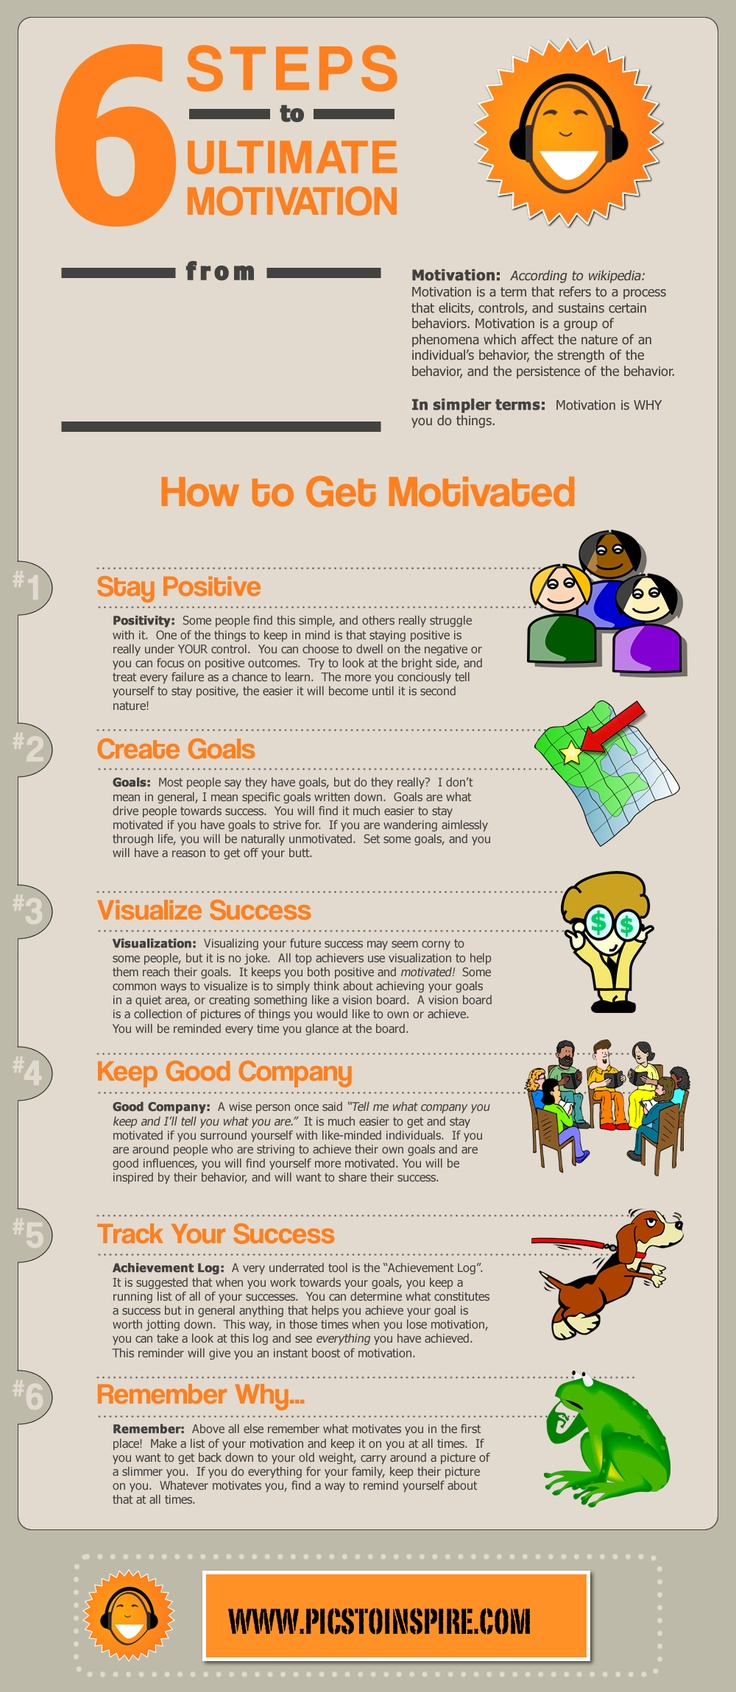 Motivational-Techniques-for-Employees